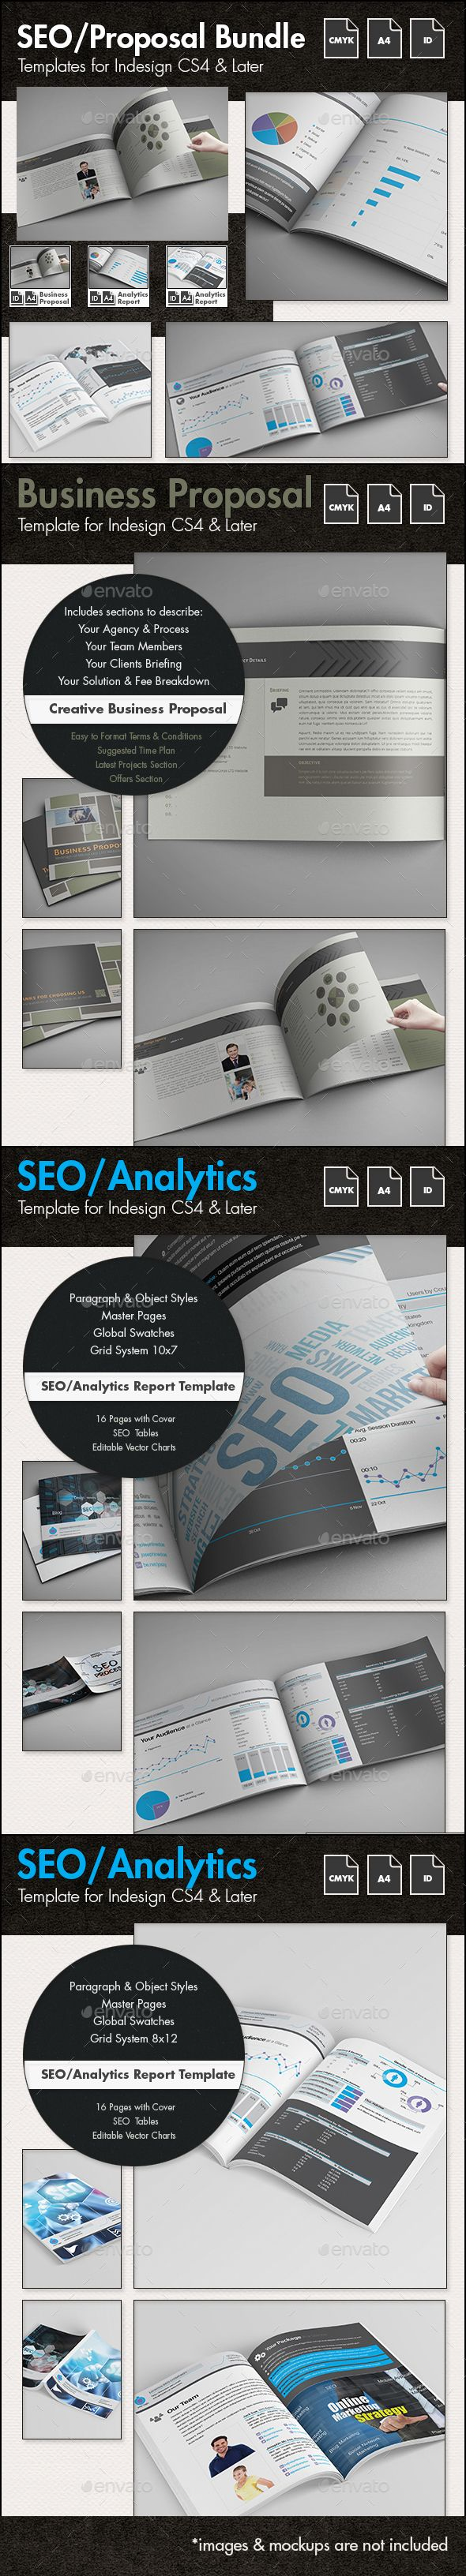 SEO Business Proposal Templates Bundle by